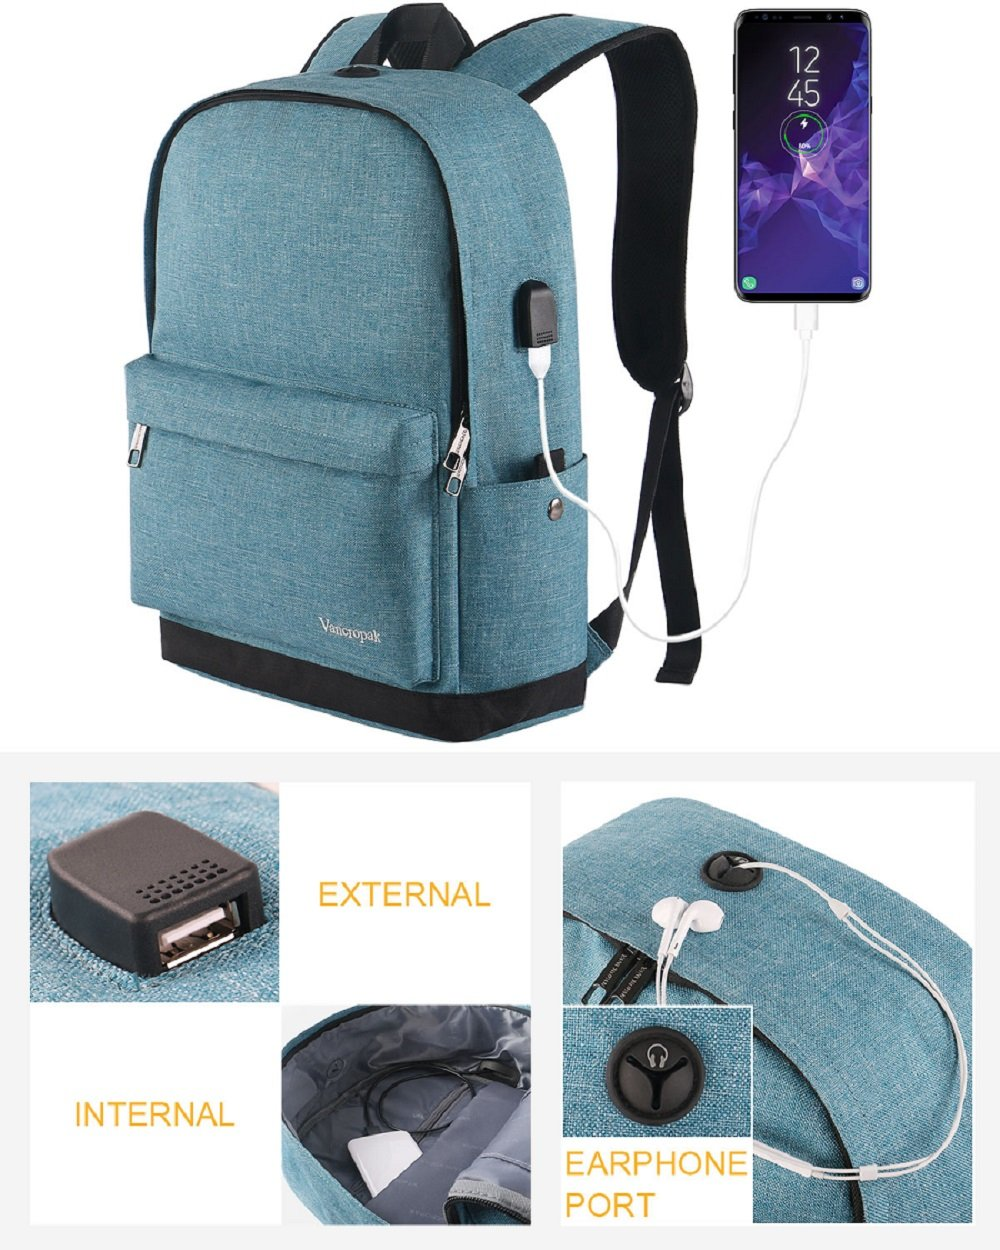 High School Backpack, Middle Student Bag with USB Port for Men Women Teen, Causel Basic Bookbag Fits 15.6 Inch Laptop/Notebook Designed for Travel Work Study - Purplish Blue by Vancropak (Image #2)